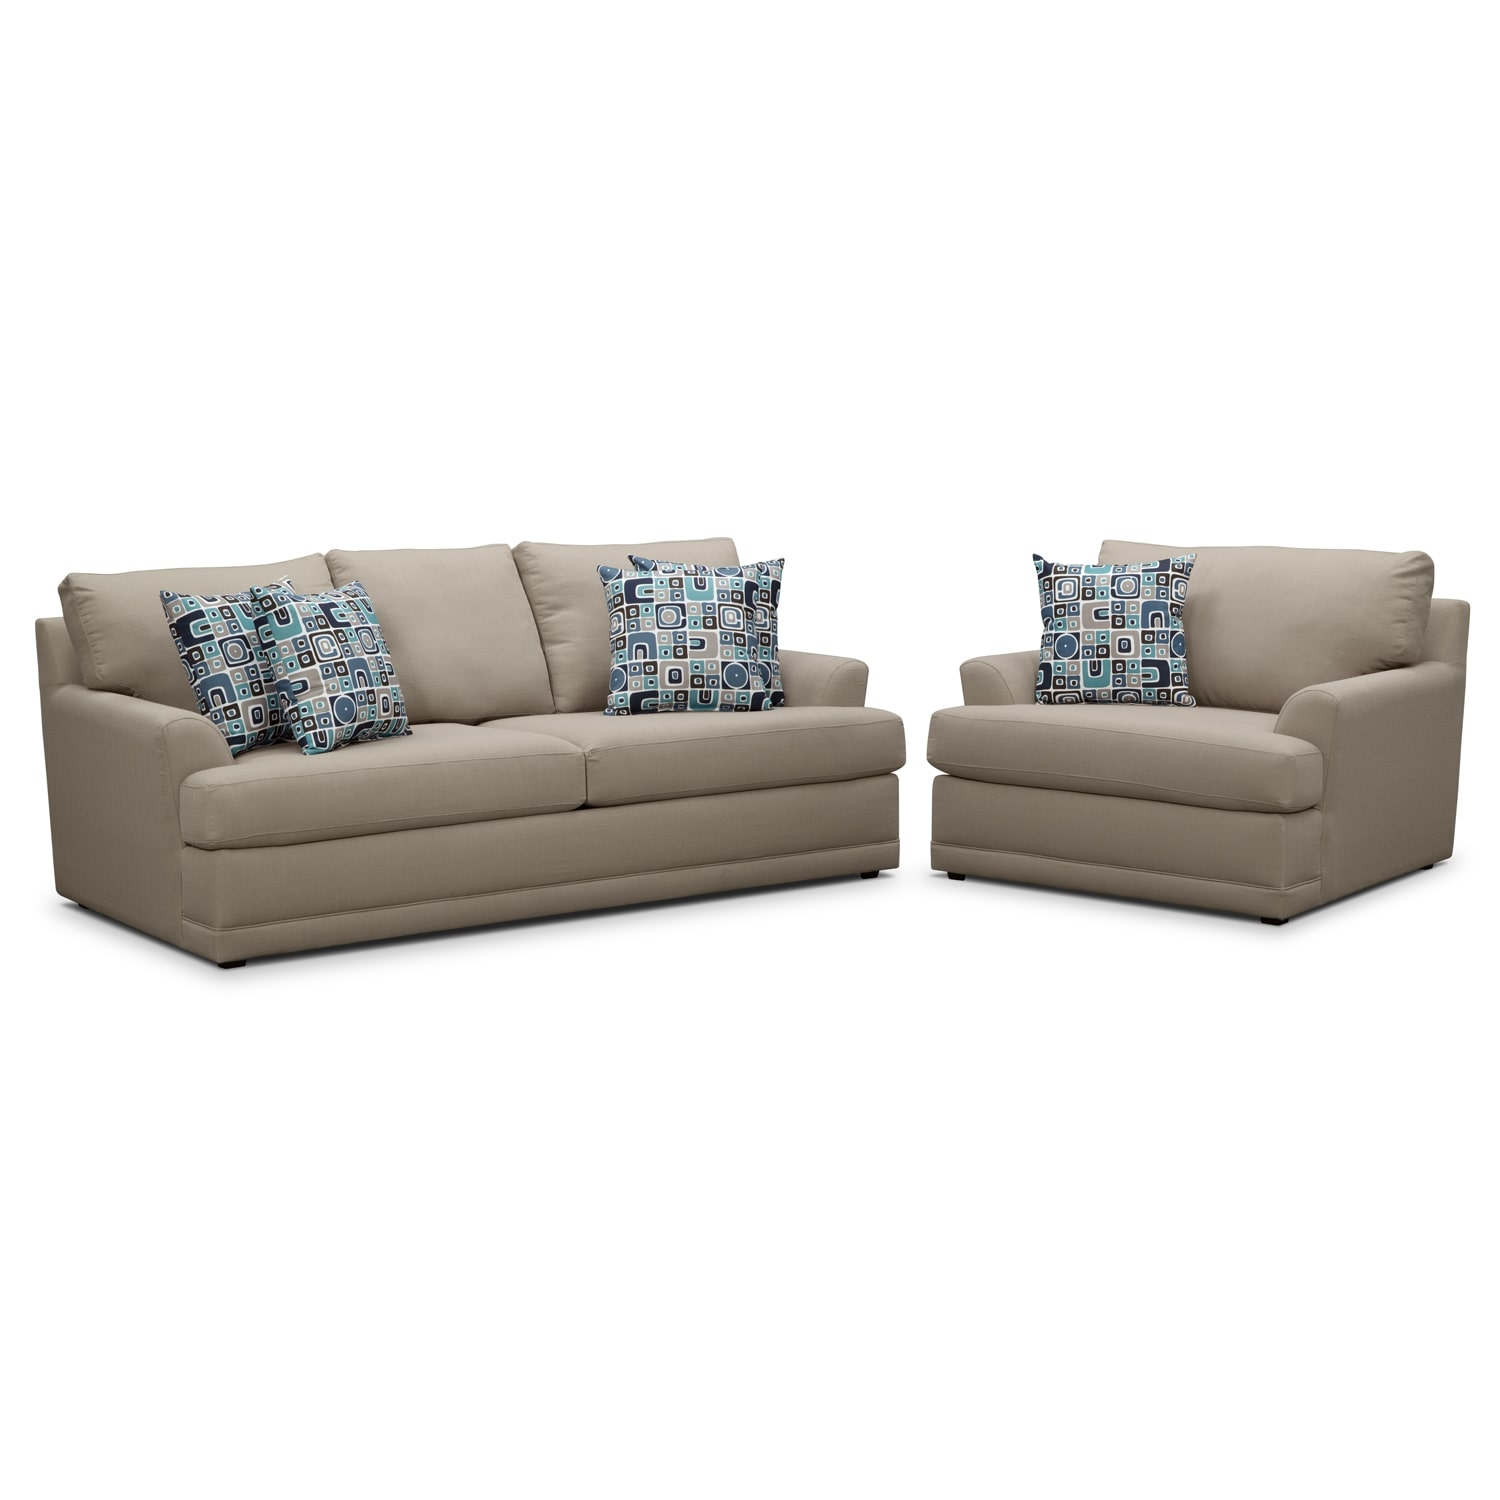 Living Room Furniture - Kismet 2 Pc. Sleeper Living Room with Chair and a Half and Innerspring Mattress - Gray